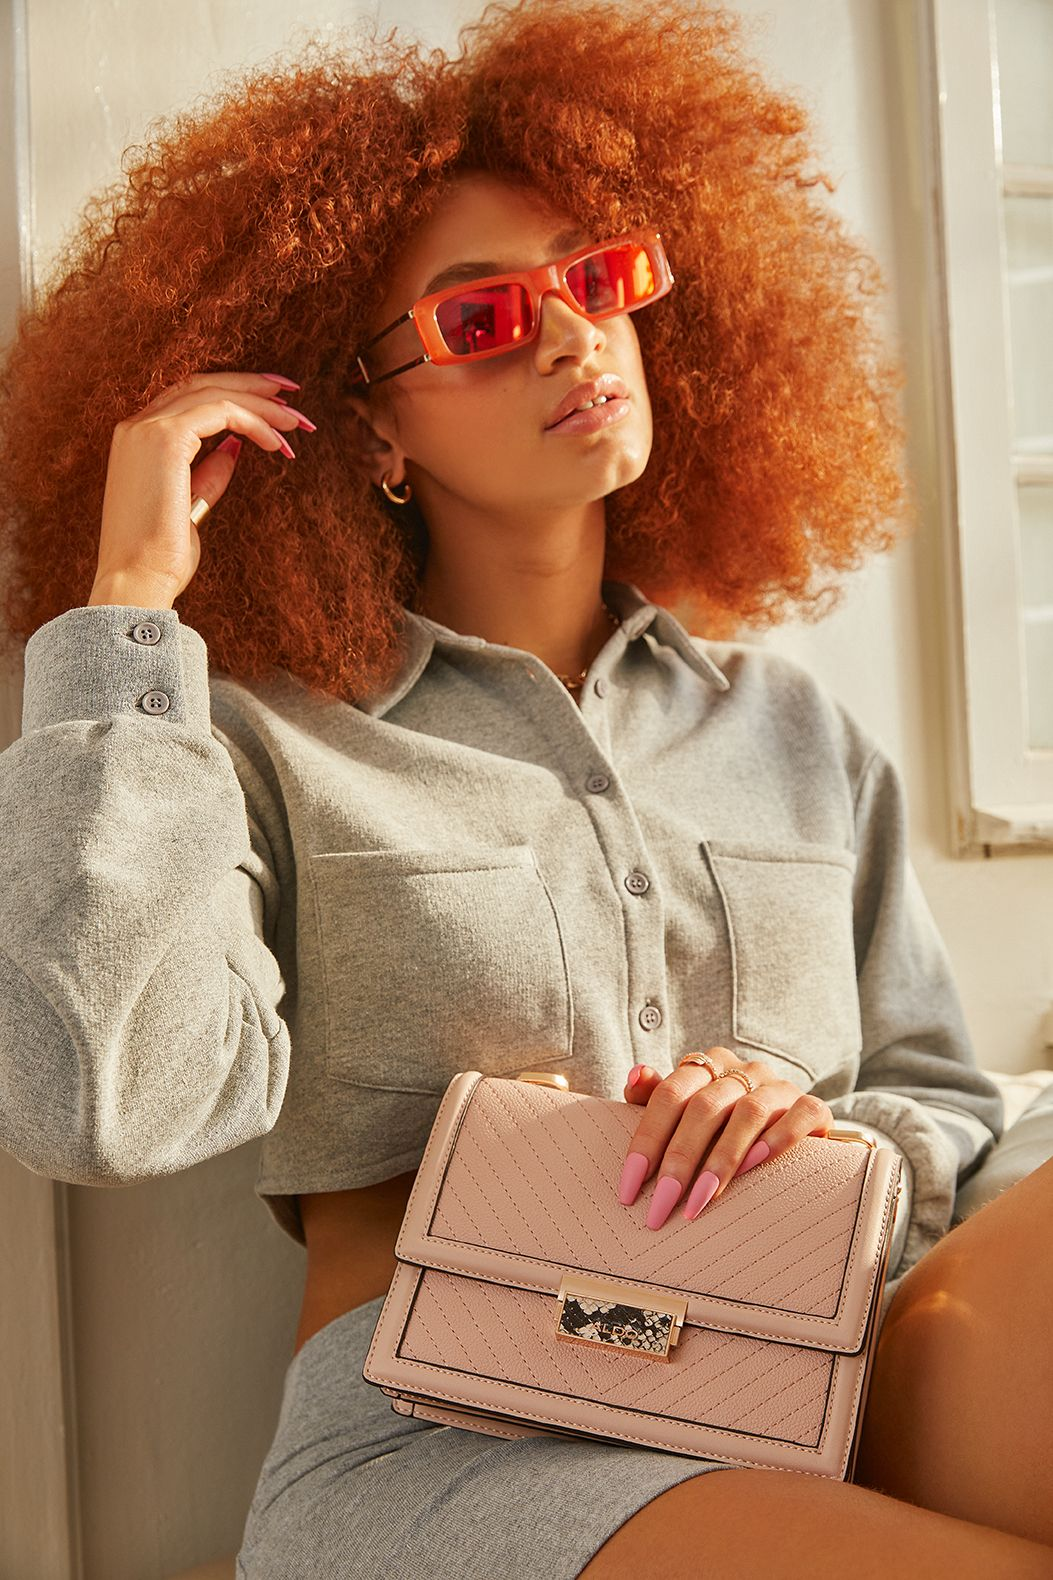 Copper red afro with red sunglasses, Aldo purse, pink fake nails.The woman is posing with attitude.